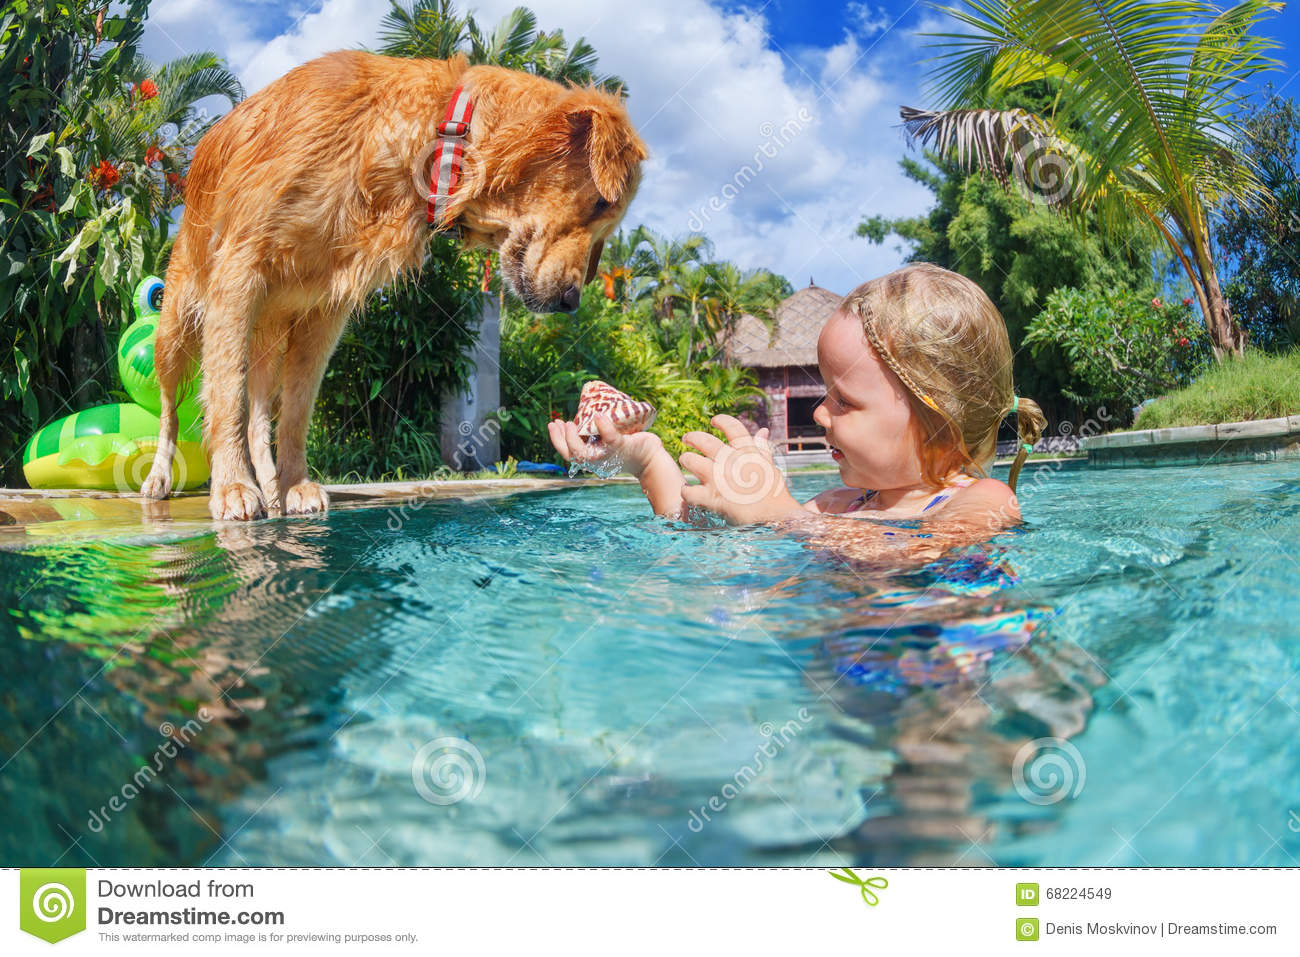 Child With Dog Dive Underwater In Swimming Pool Stock Photo Image 68224549